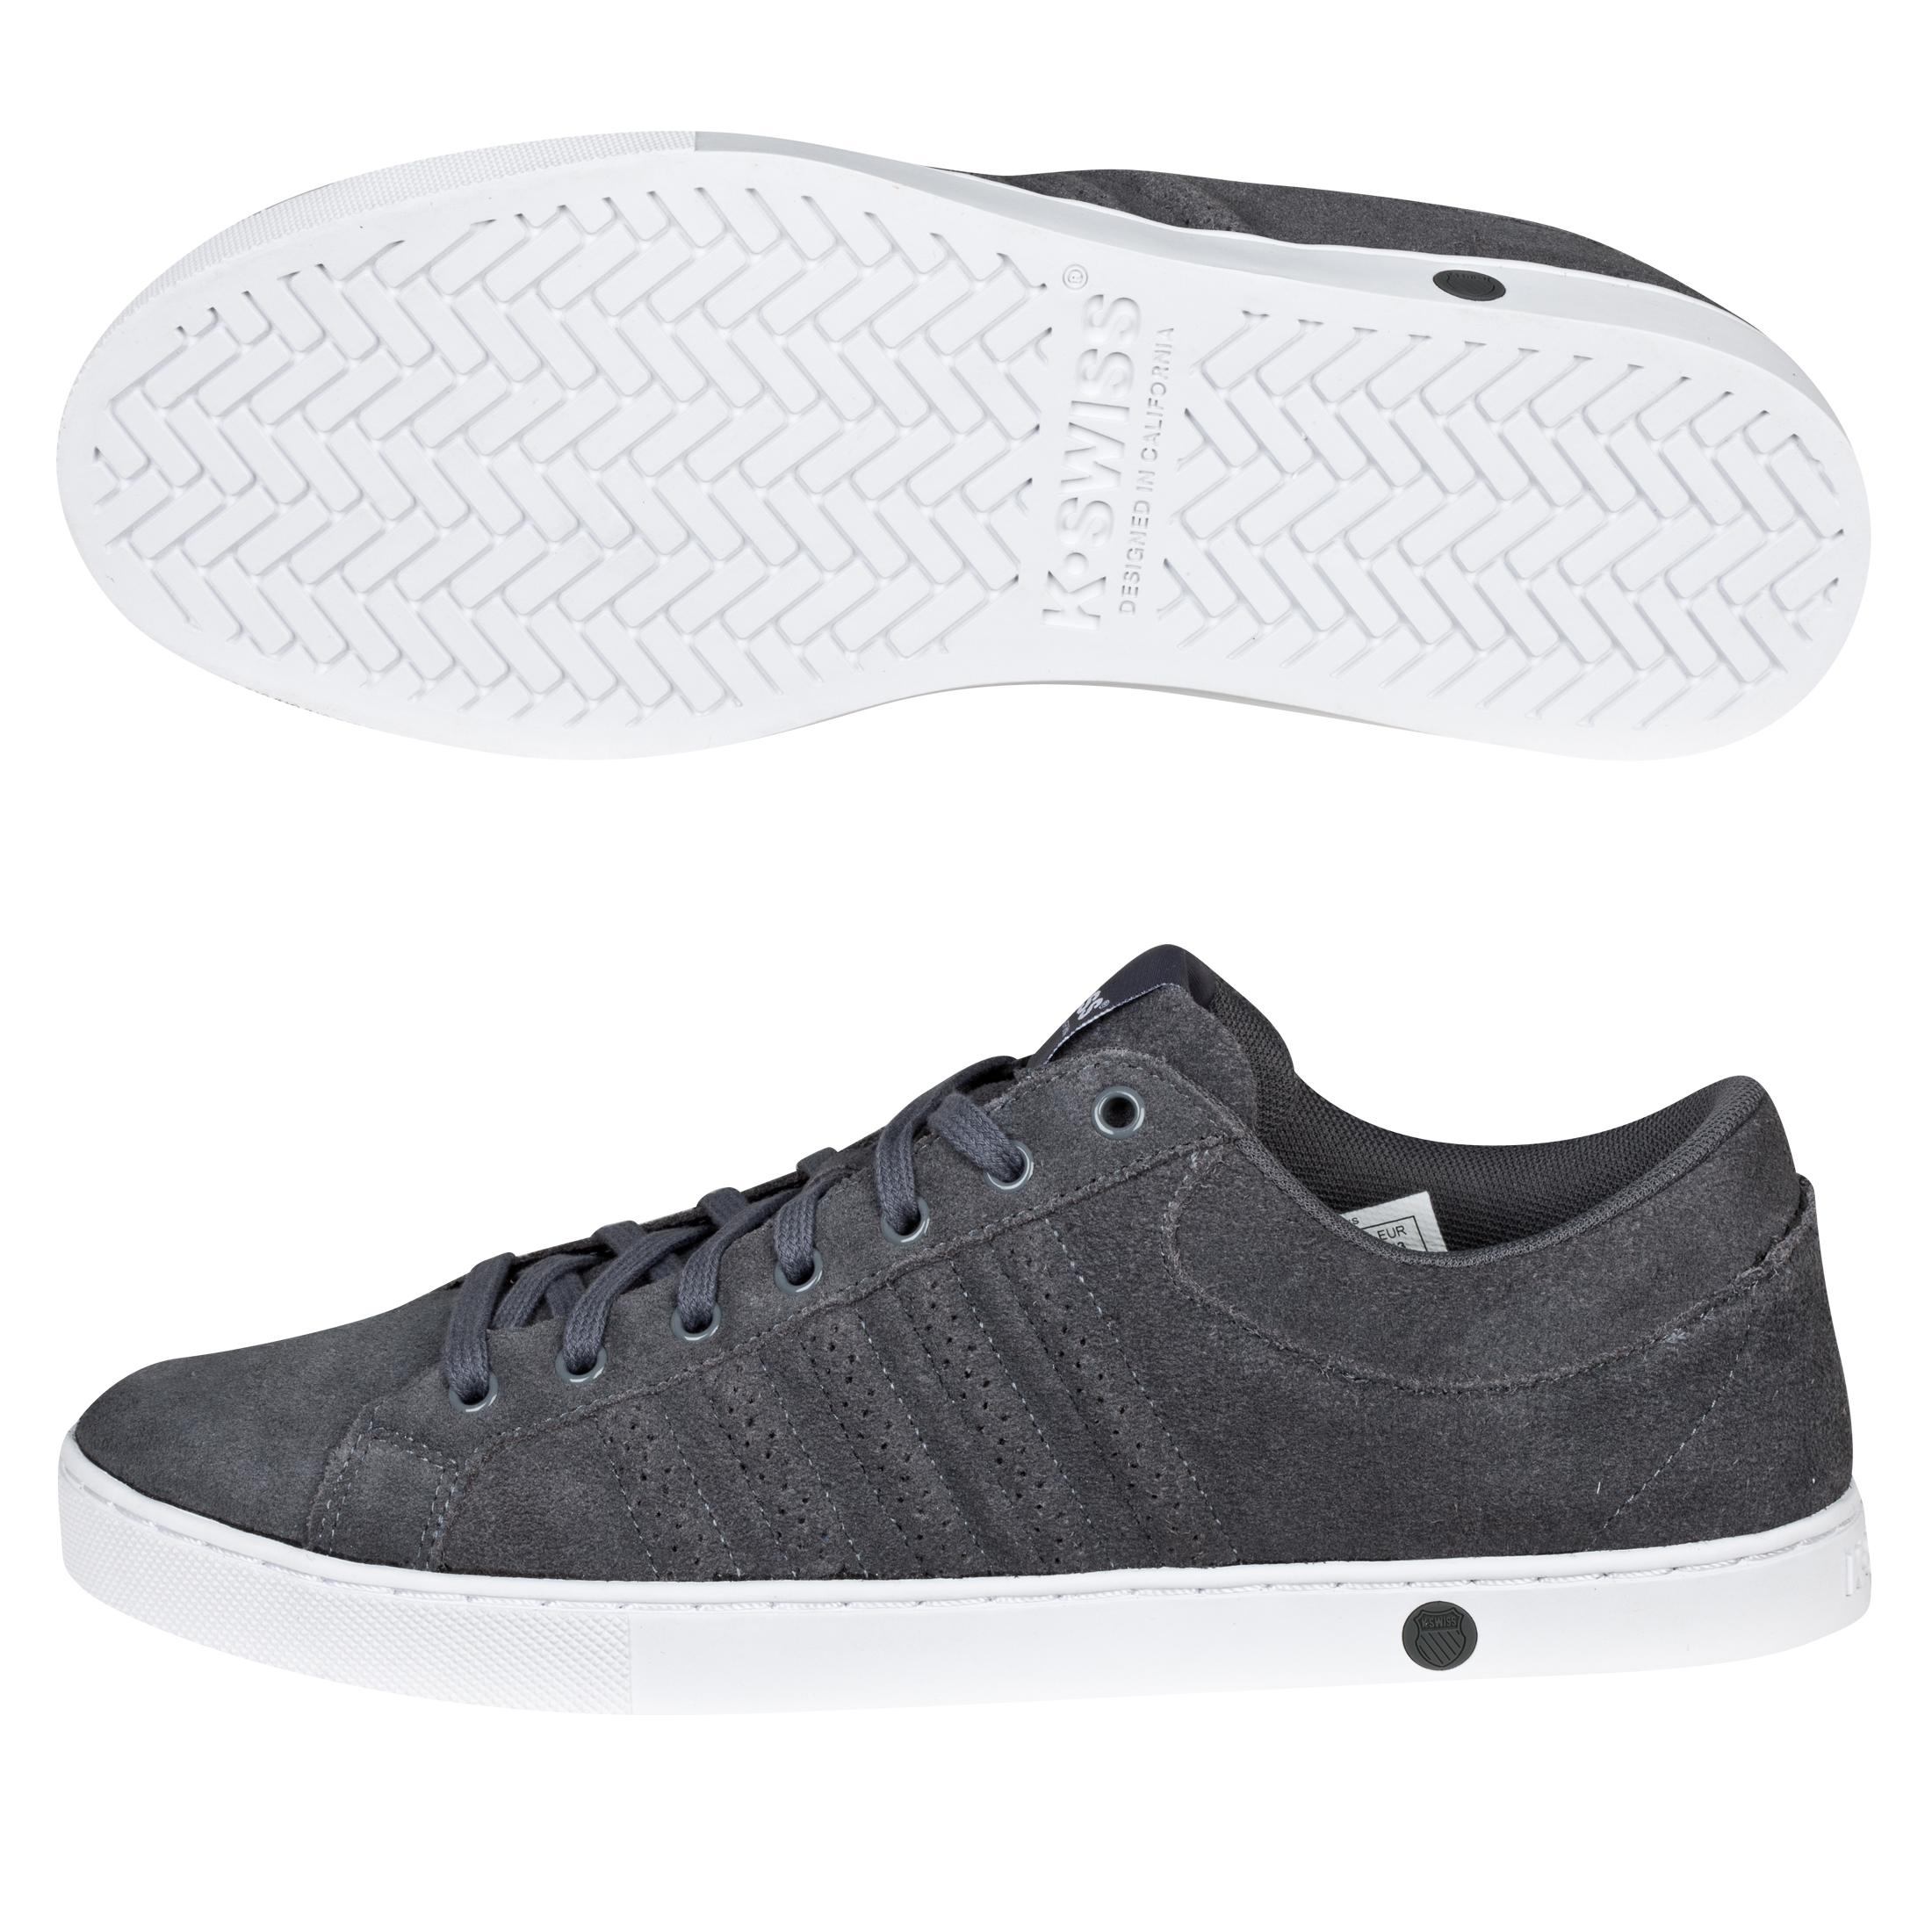 K Swiss K-Swiss Adcourt 72 Suede Trainers - Charcoal/White